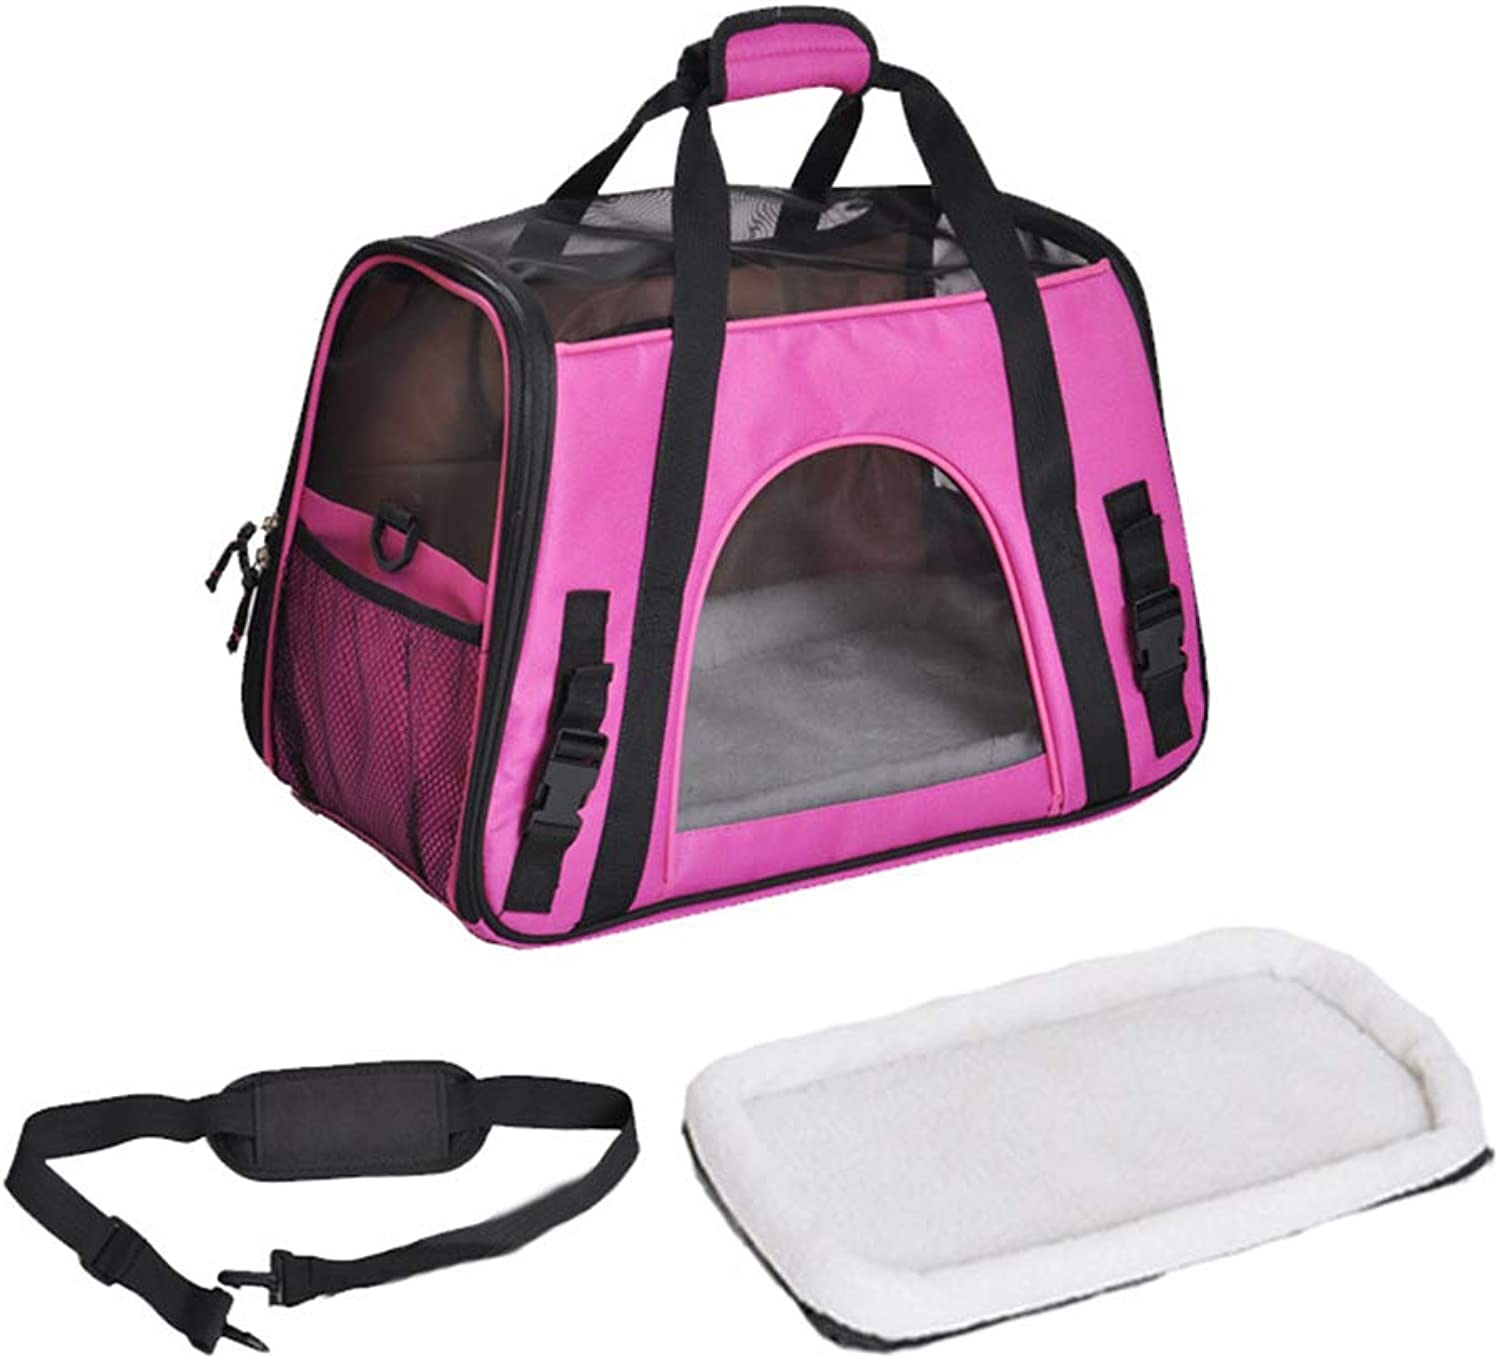 GWM Backpacks Portable Pet Travel Carrier Bag Dog Cat Carrier Tote, Premium Quality, Lightweight Travel Bag for Small Animals with Mesh on Top and Sides, with Fleece Mat (color   Pink)